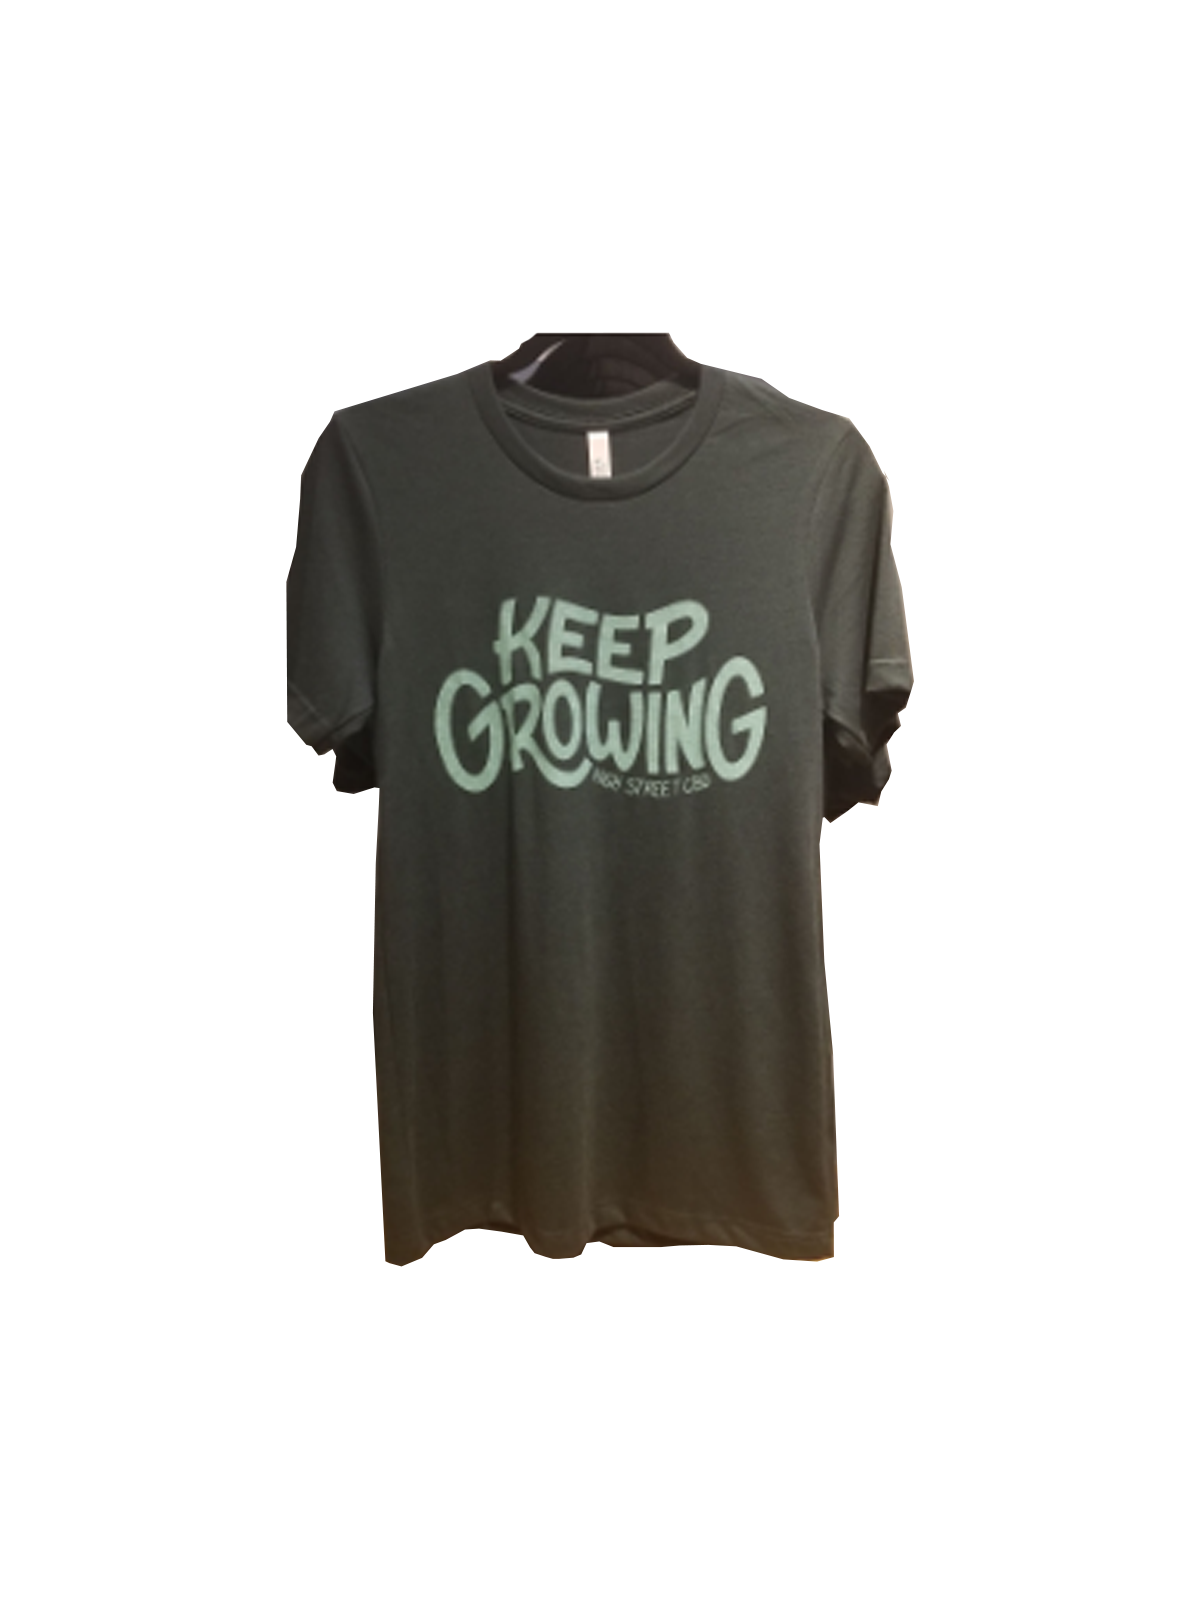 Hanging Keep Growing t-shirt